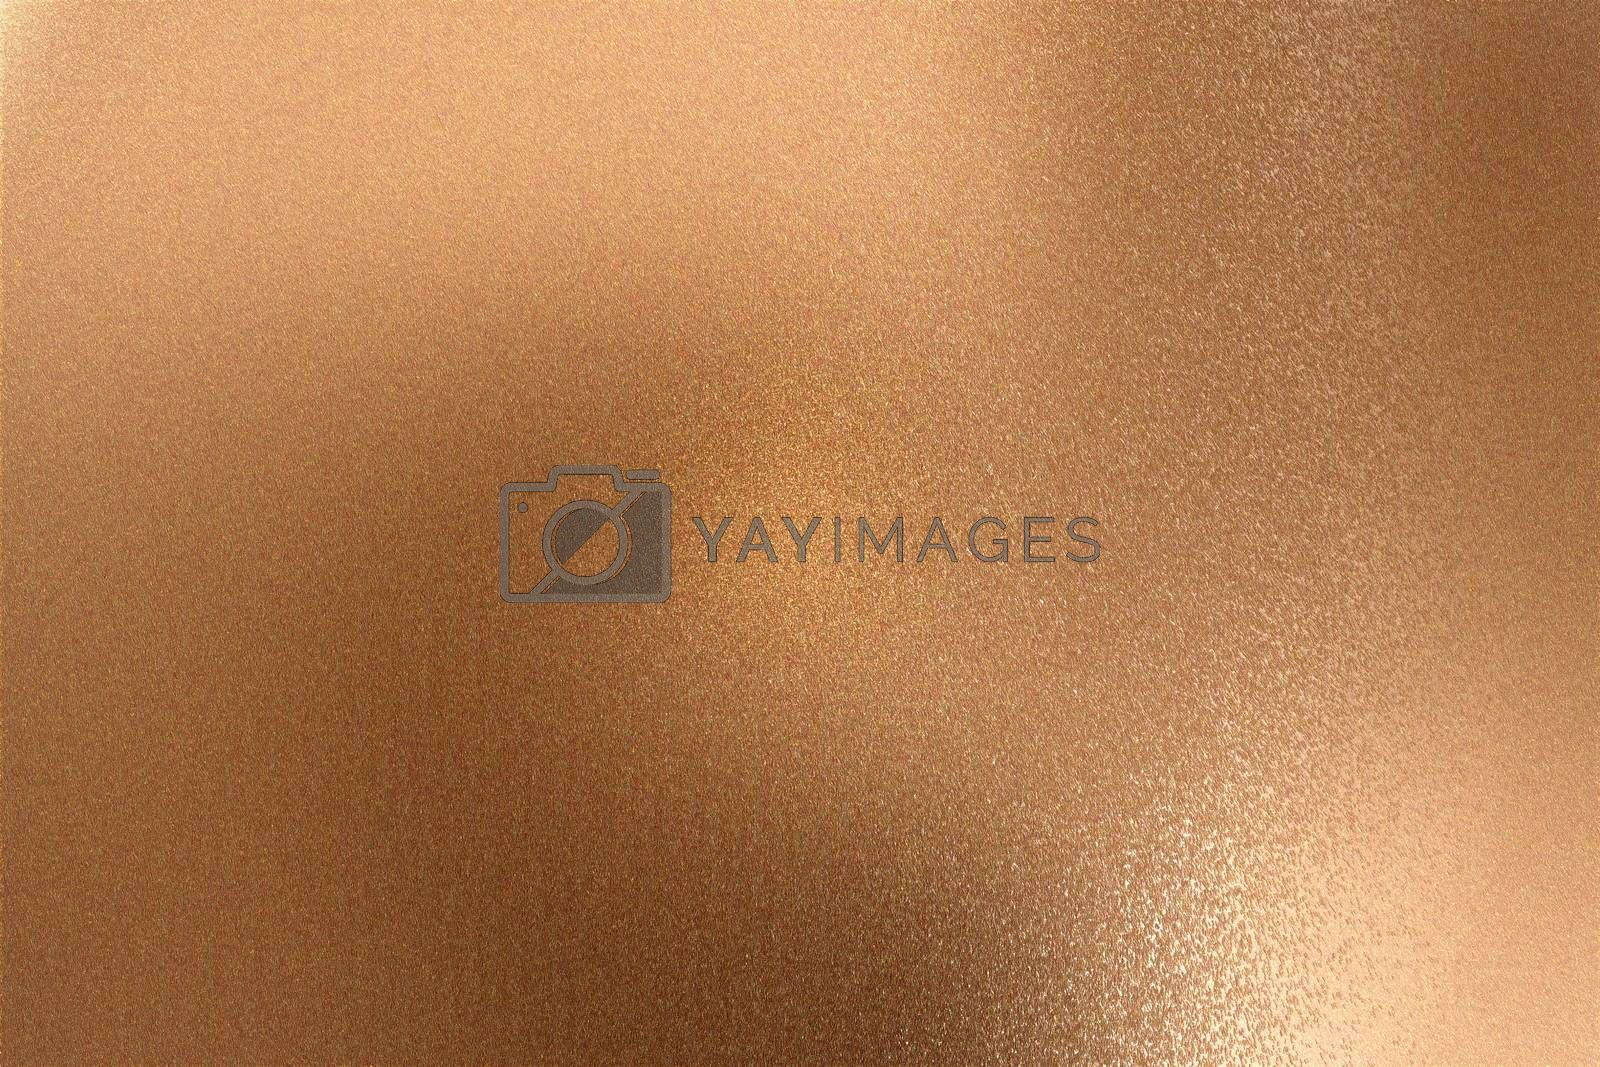 Royalty free image of Glowing bronze metallic wall with scratched surface, abstract texture background by mouu007